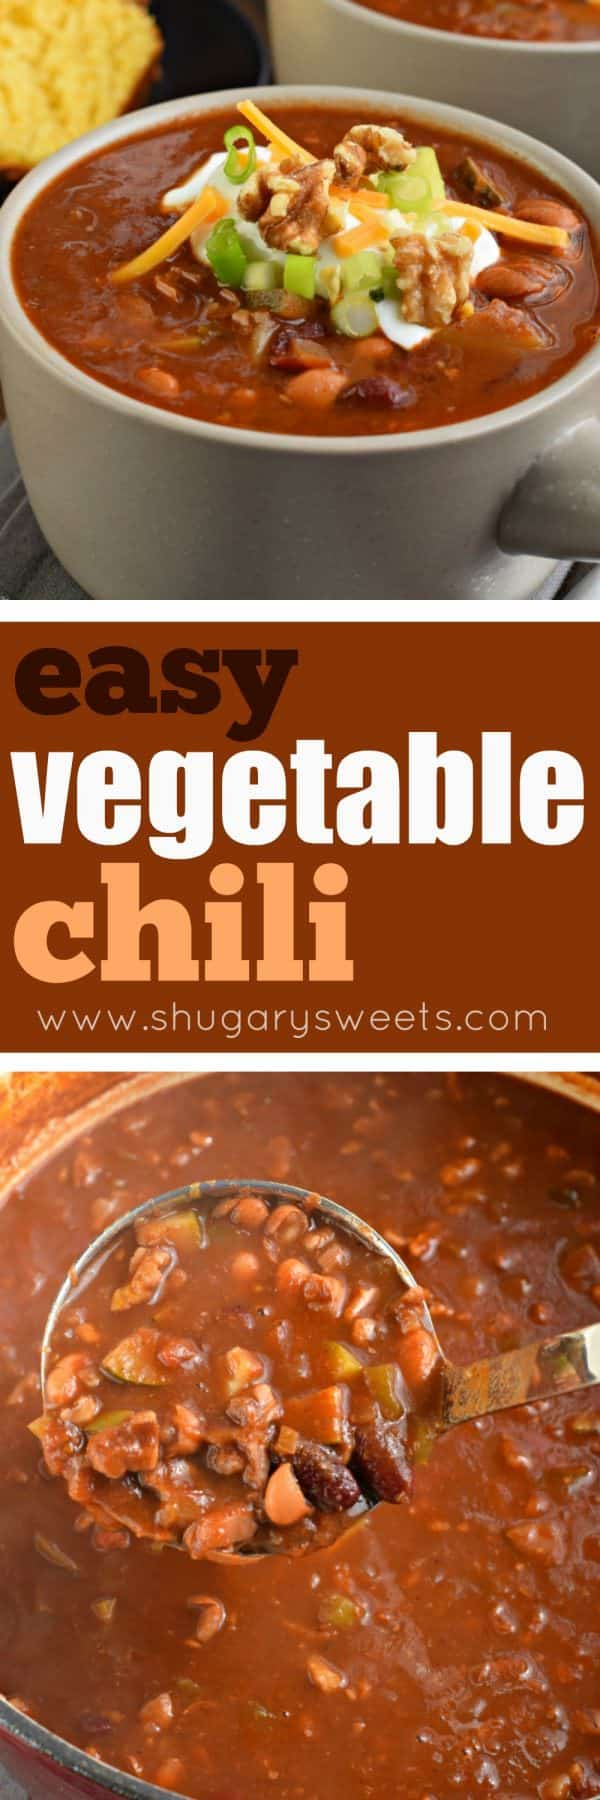 Hearty Vegetarian Chili recipe packed with flavor! You won't miss the meat in this vegetable chili, and the addition of walnuts gives the perfect texture and flavor!